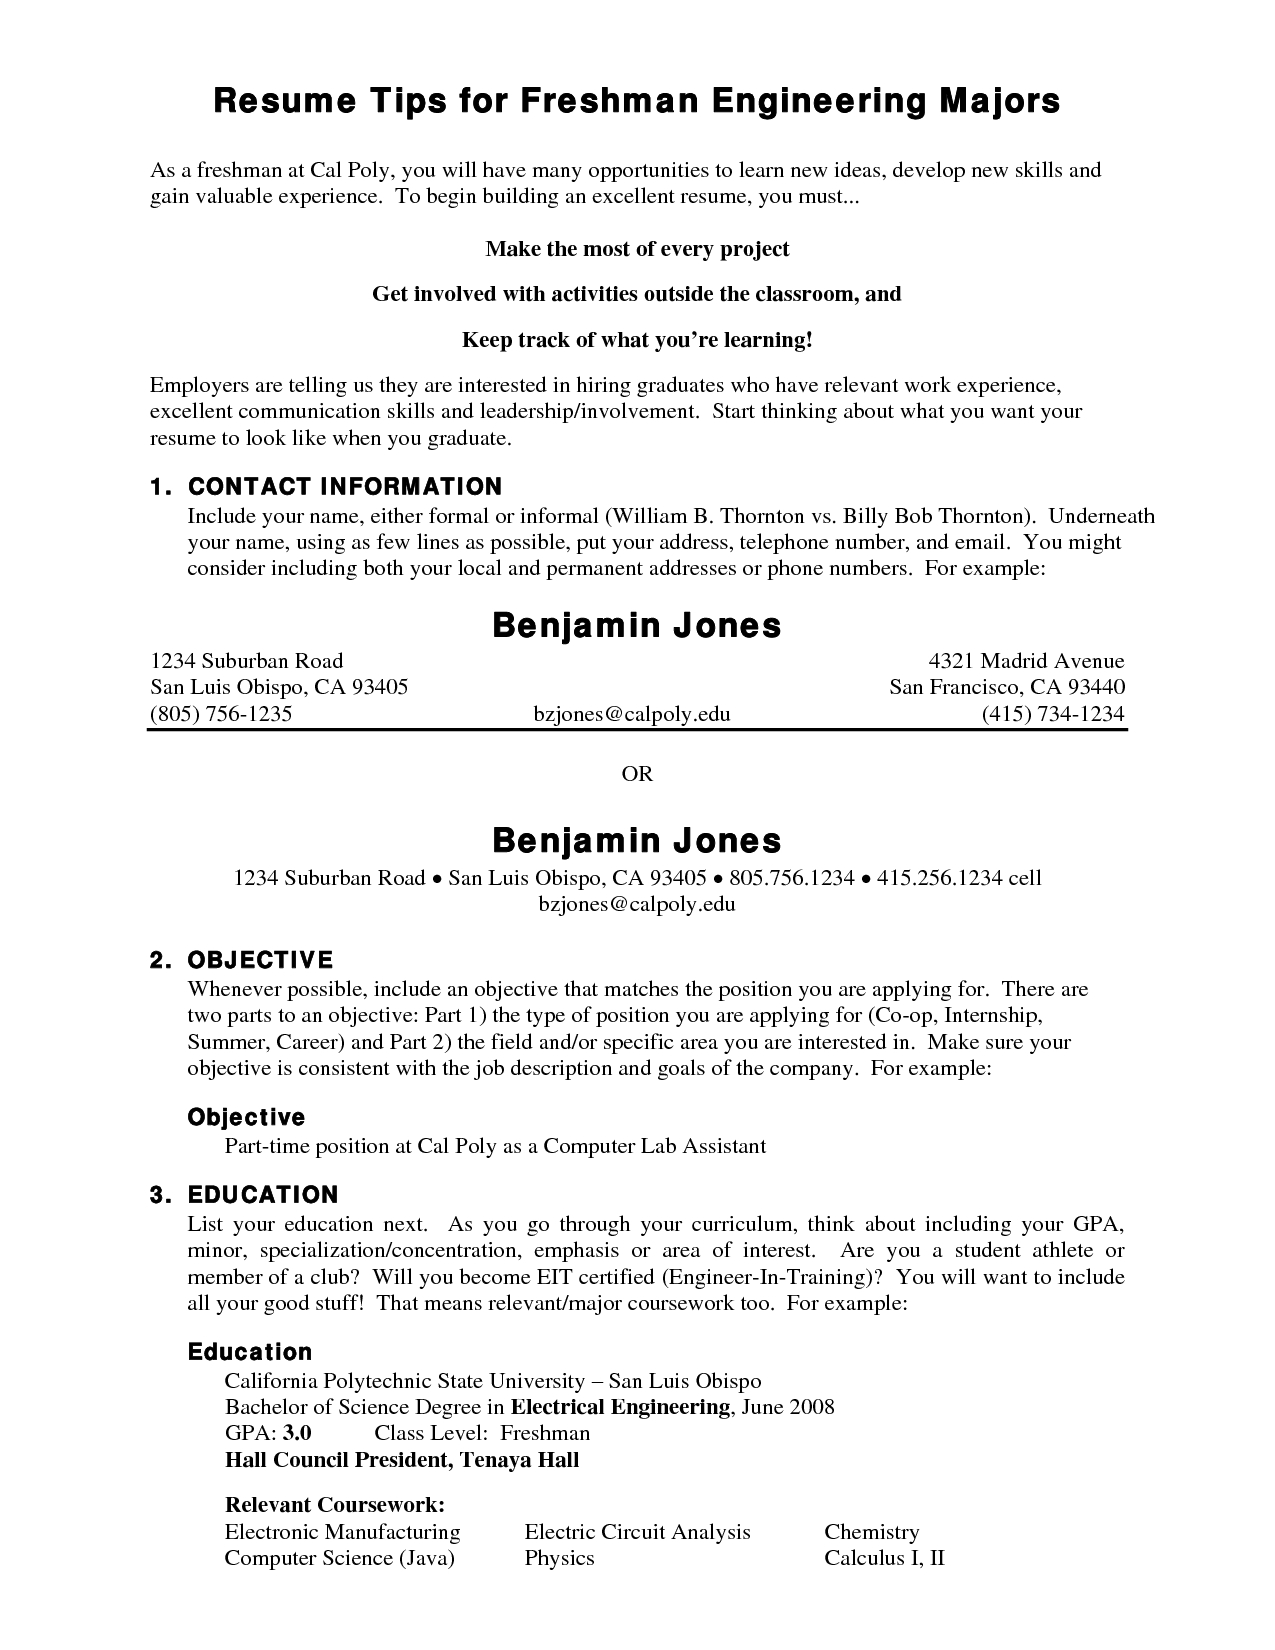 10 Most Popular Summer Job Ideas For College Students amusing resumes samples for college students summer jobs for your 2021